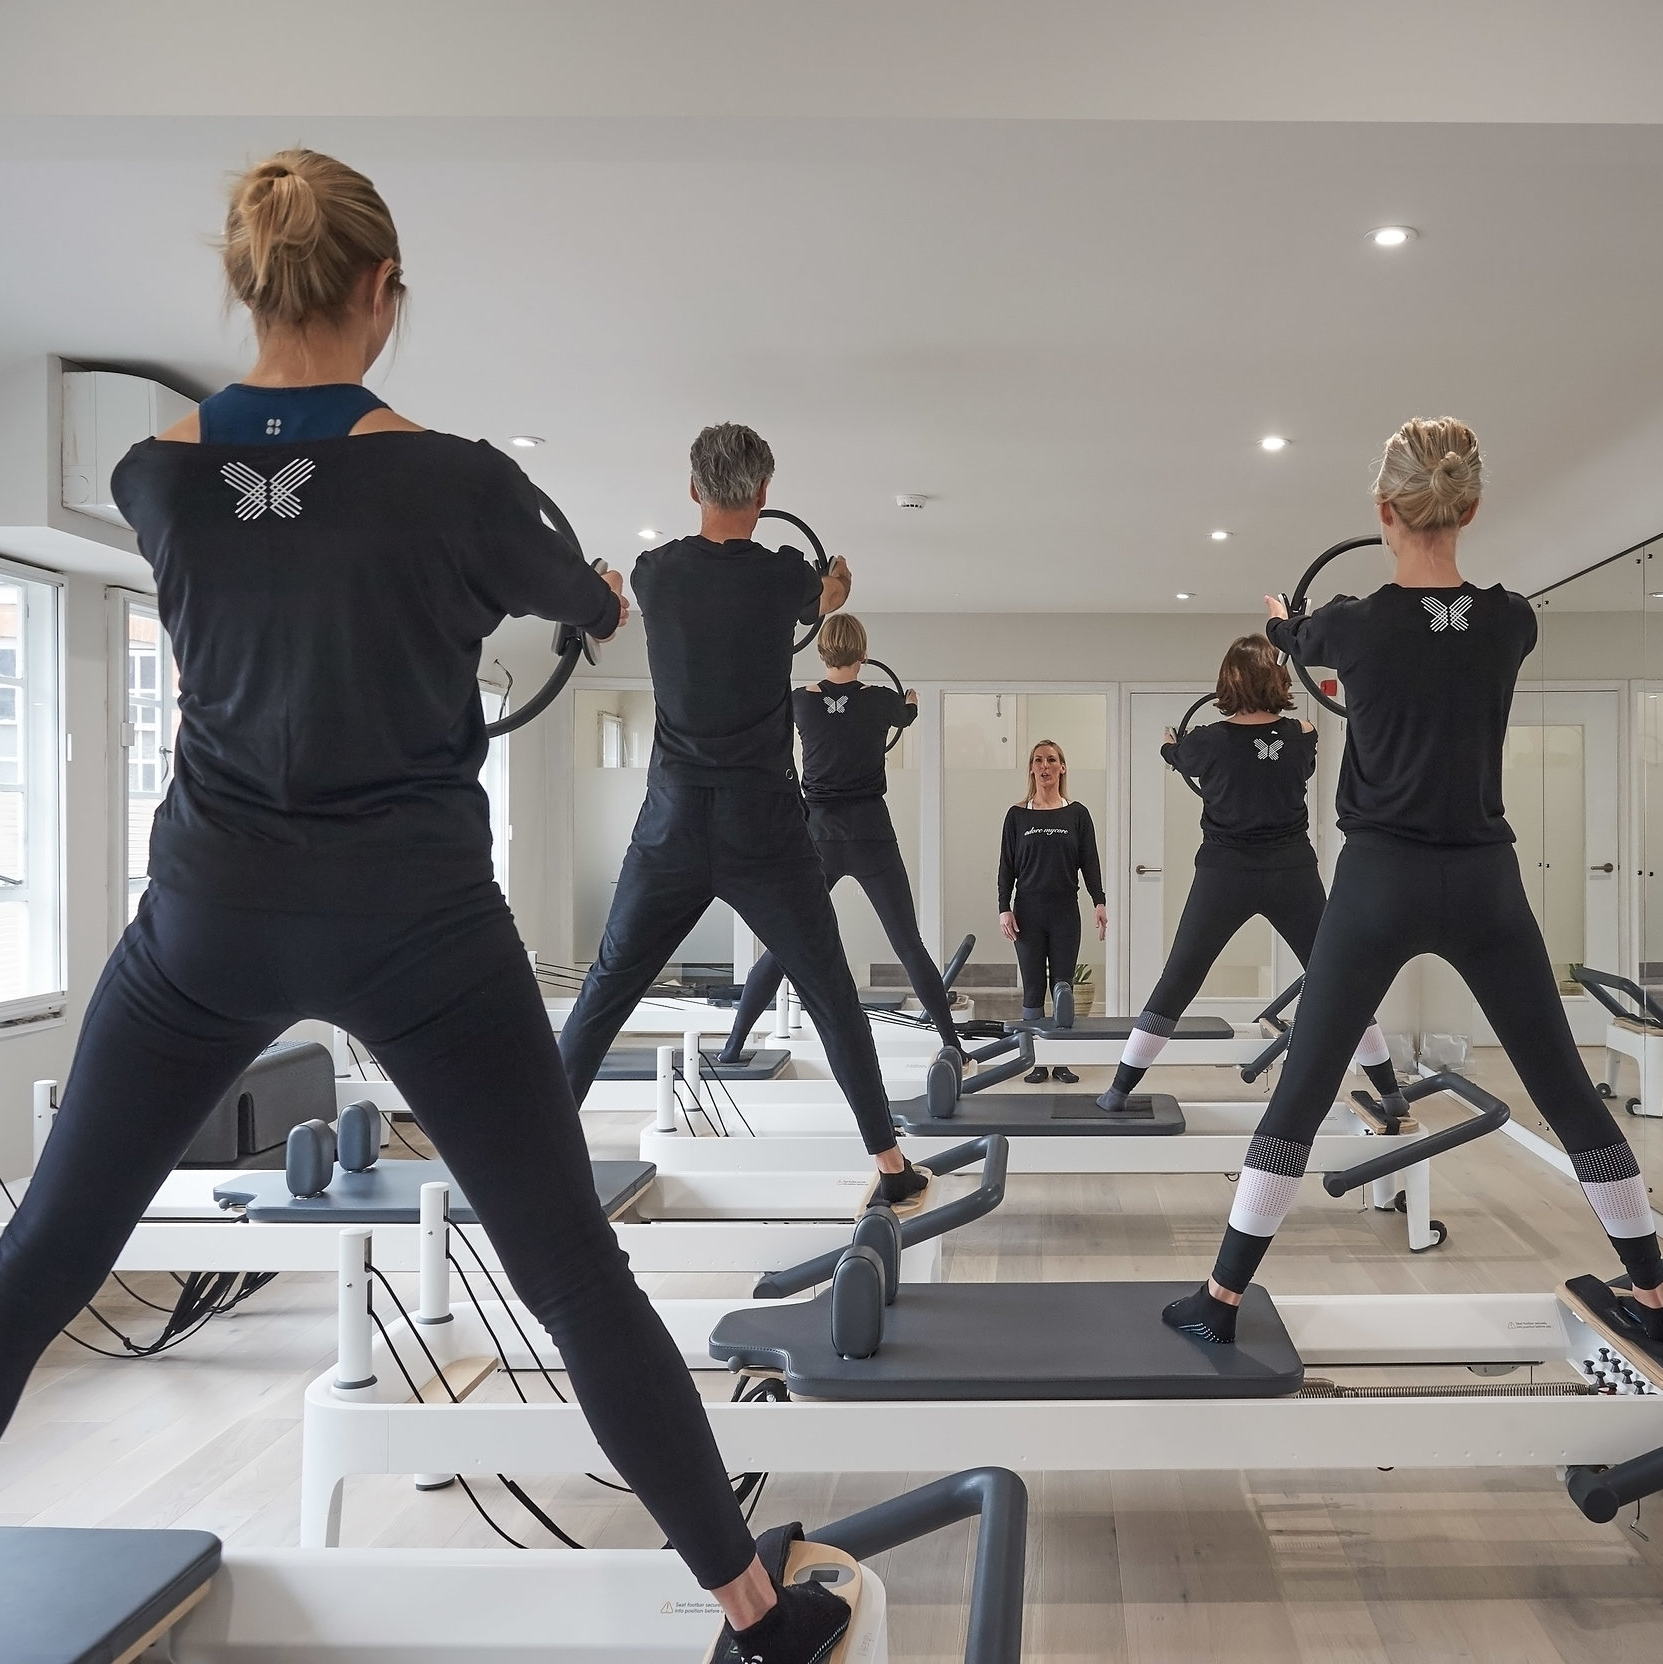 What to expect... - Each 1 hour workshop will include;- an introduction to the reformer- fundamental reformer exercises- key benefits you can gain from regular use- Q&A session & studio tourFor only...Members - £10Non-Members - £15Or included with a valid Reformer Payment Plan.